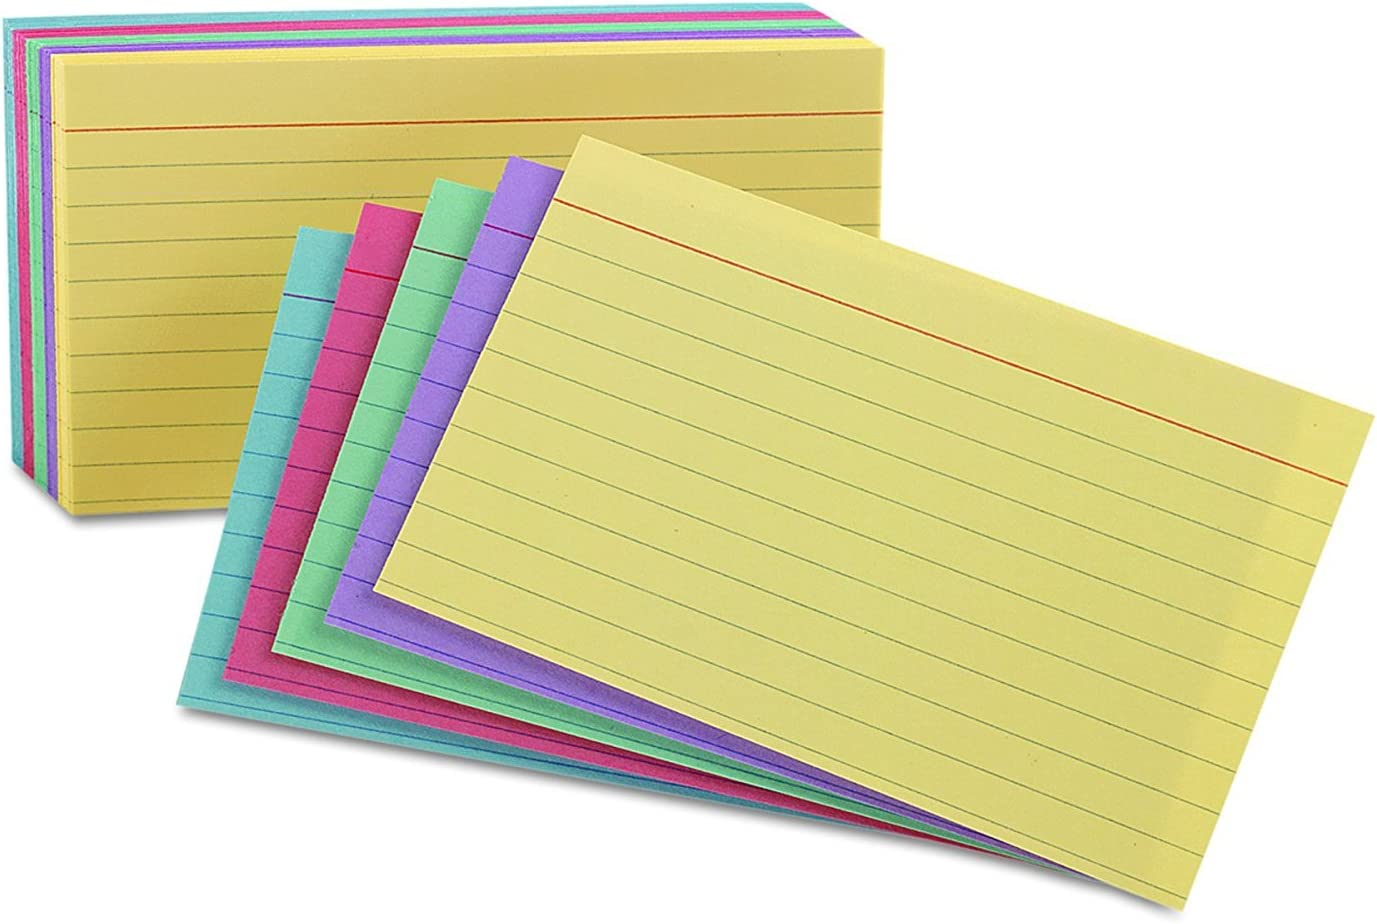 Assorted Colors Oxford Index Cards Ruled 5 x 8 6 Pack of 100 Cards 35810 600 Cards Total